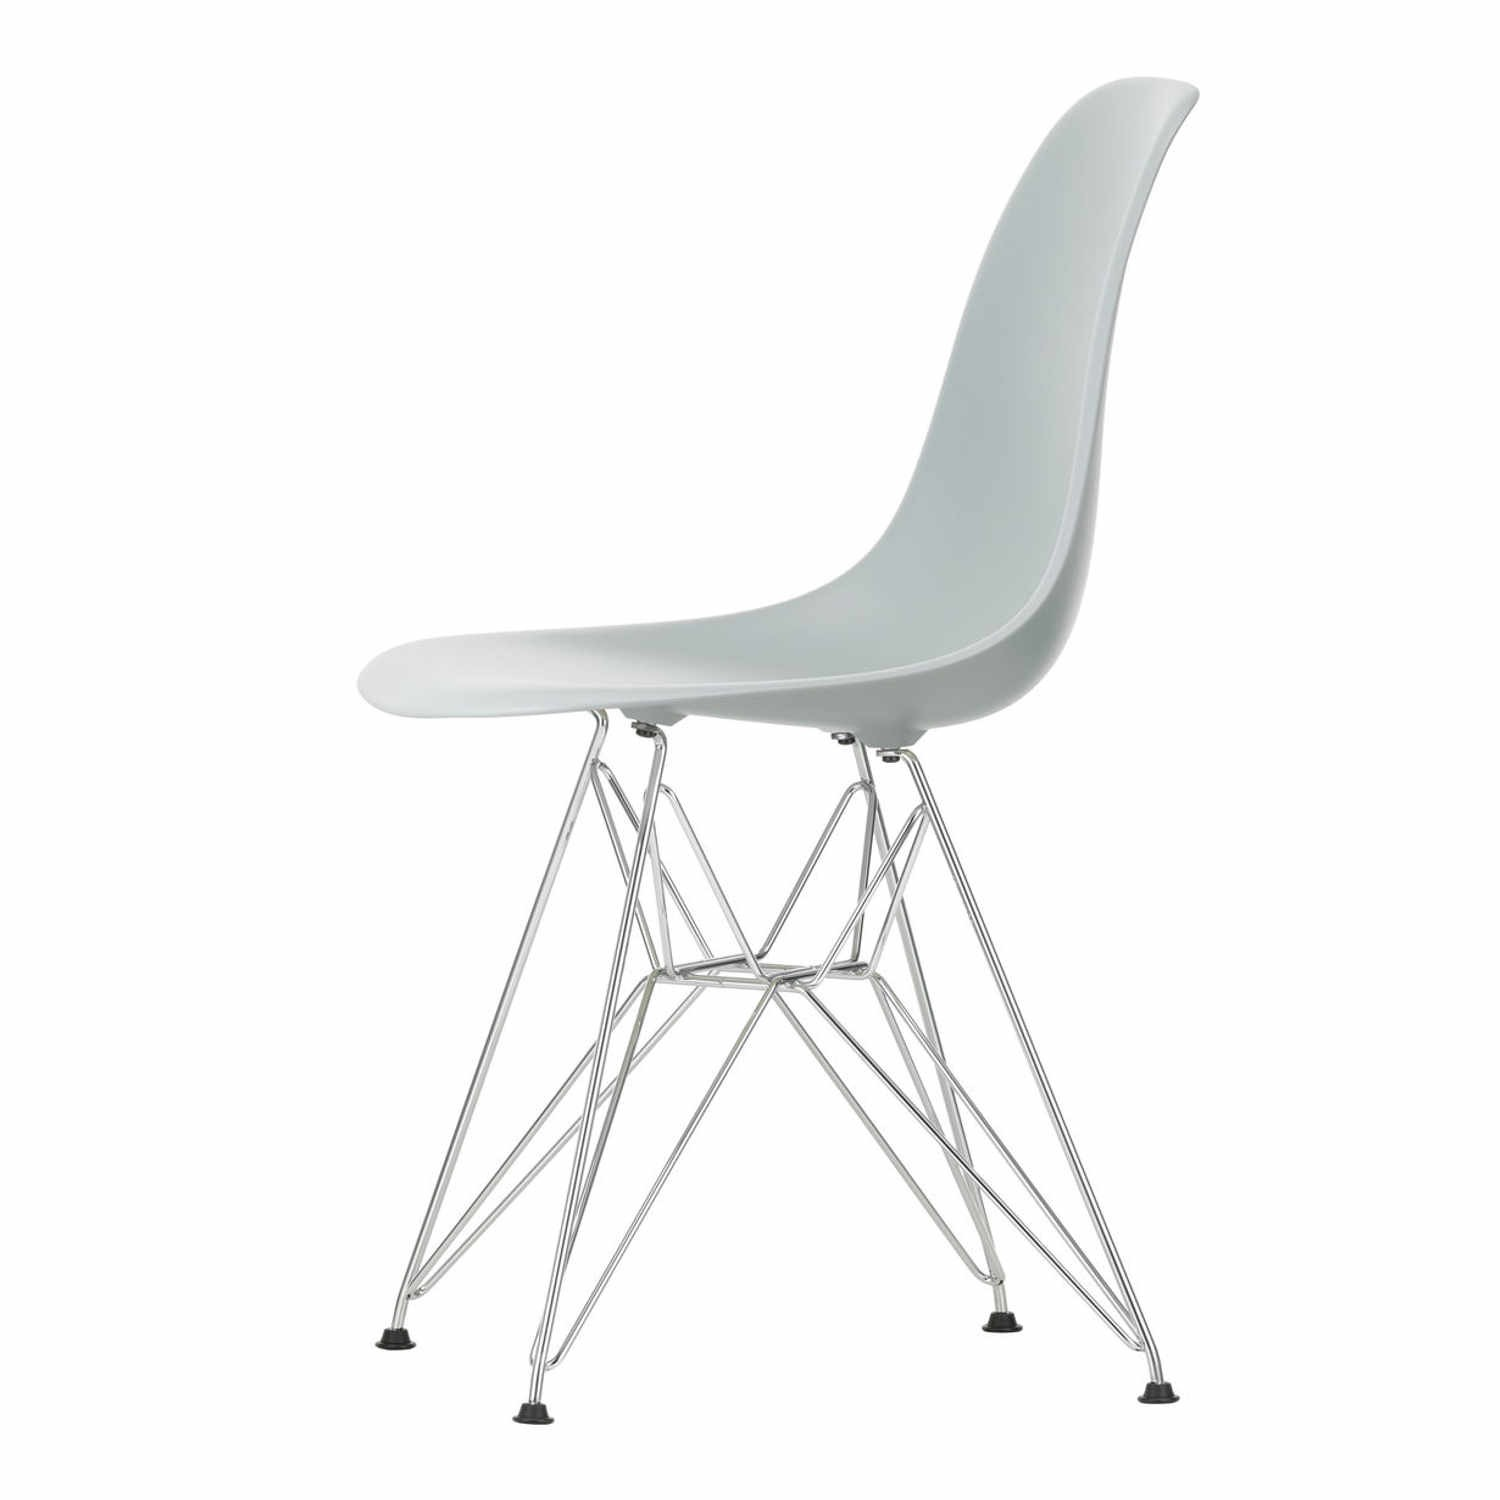 Vitra Eames Plastic Side Chair Vitra Eames Plastic Side Chair Dsr Stuhl - Bruno-wickart.ch